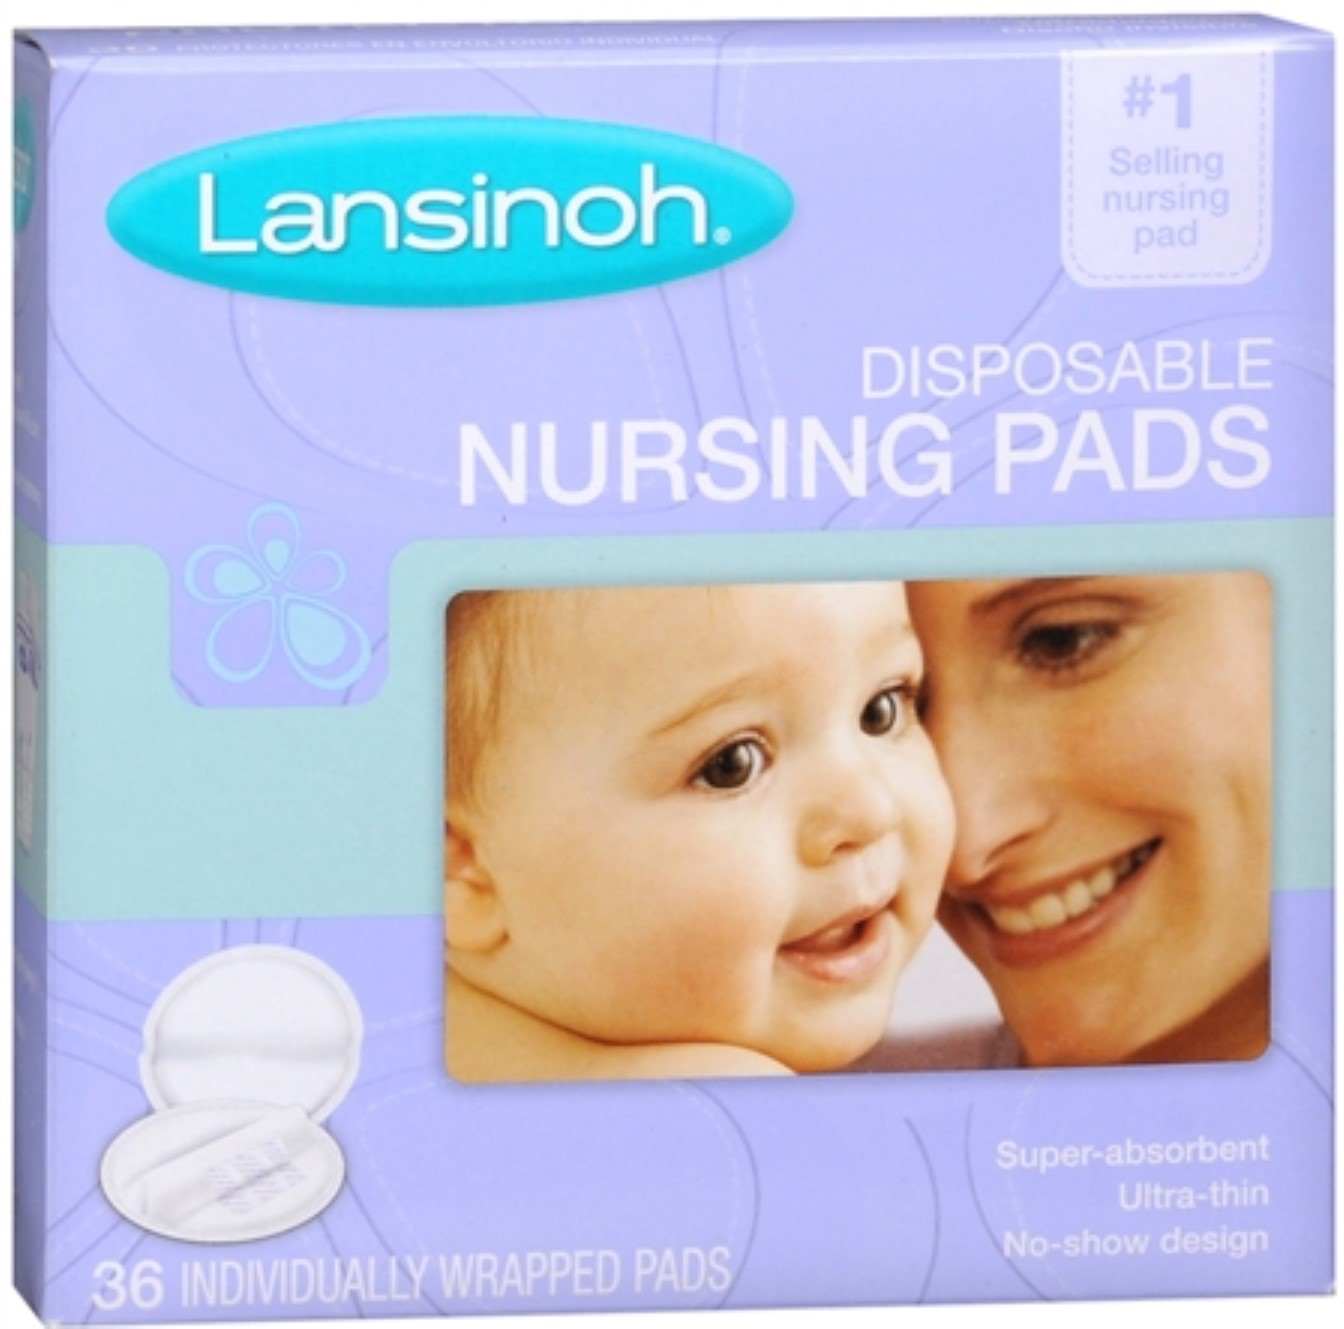 Lansinoh Nursing Pads Disposable 36 Each (Pack of 4) by Lansinoh